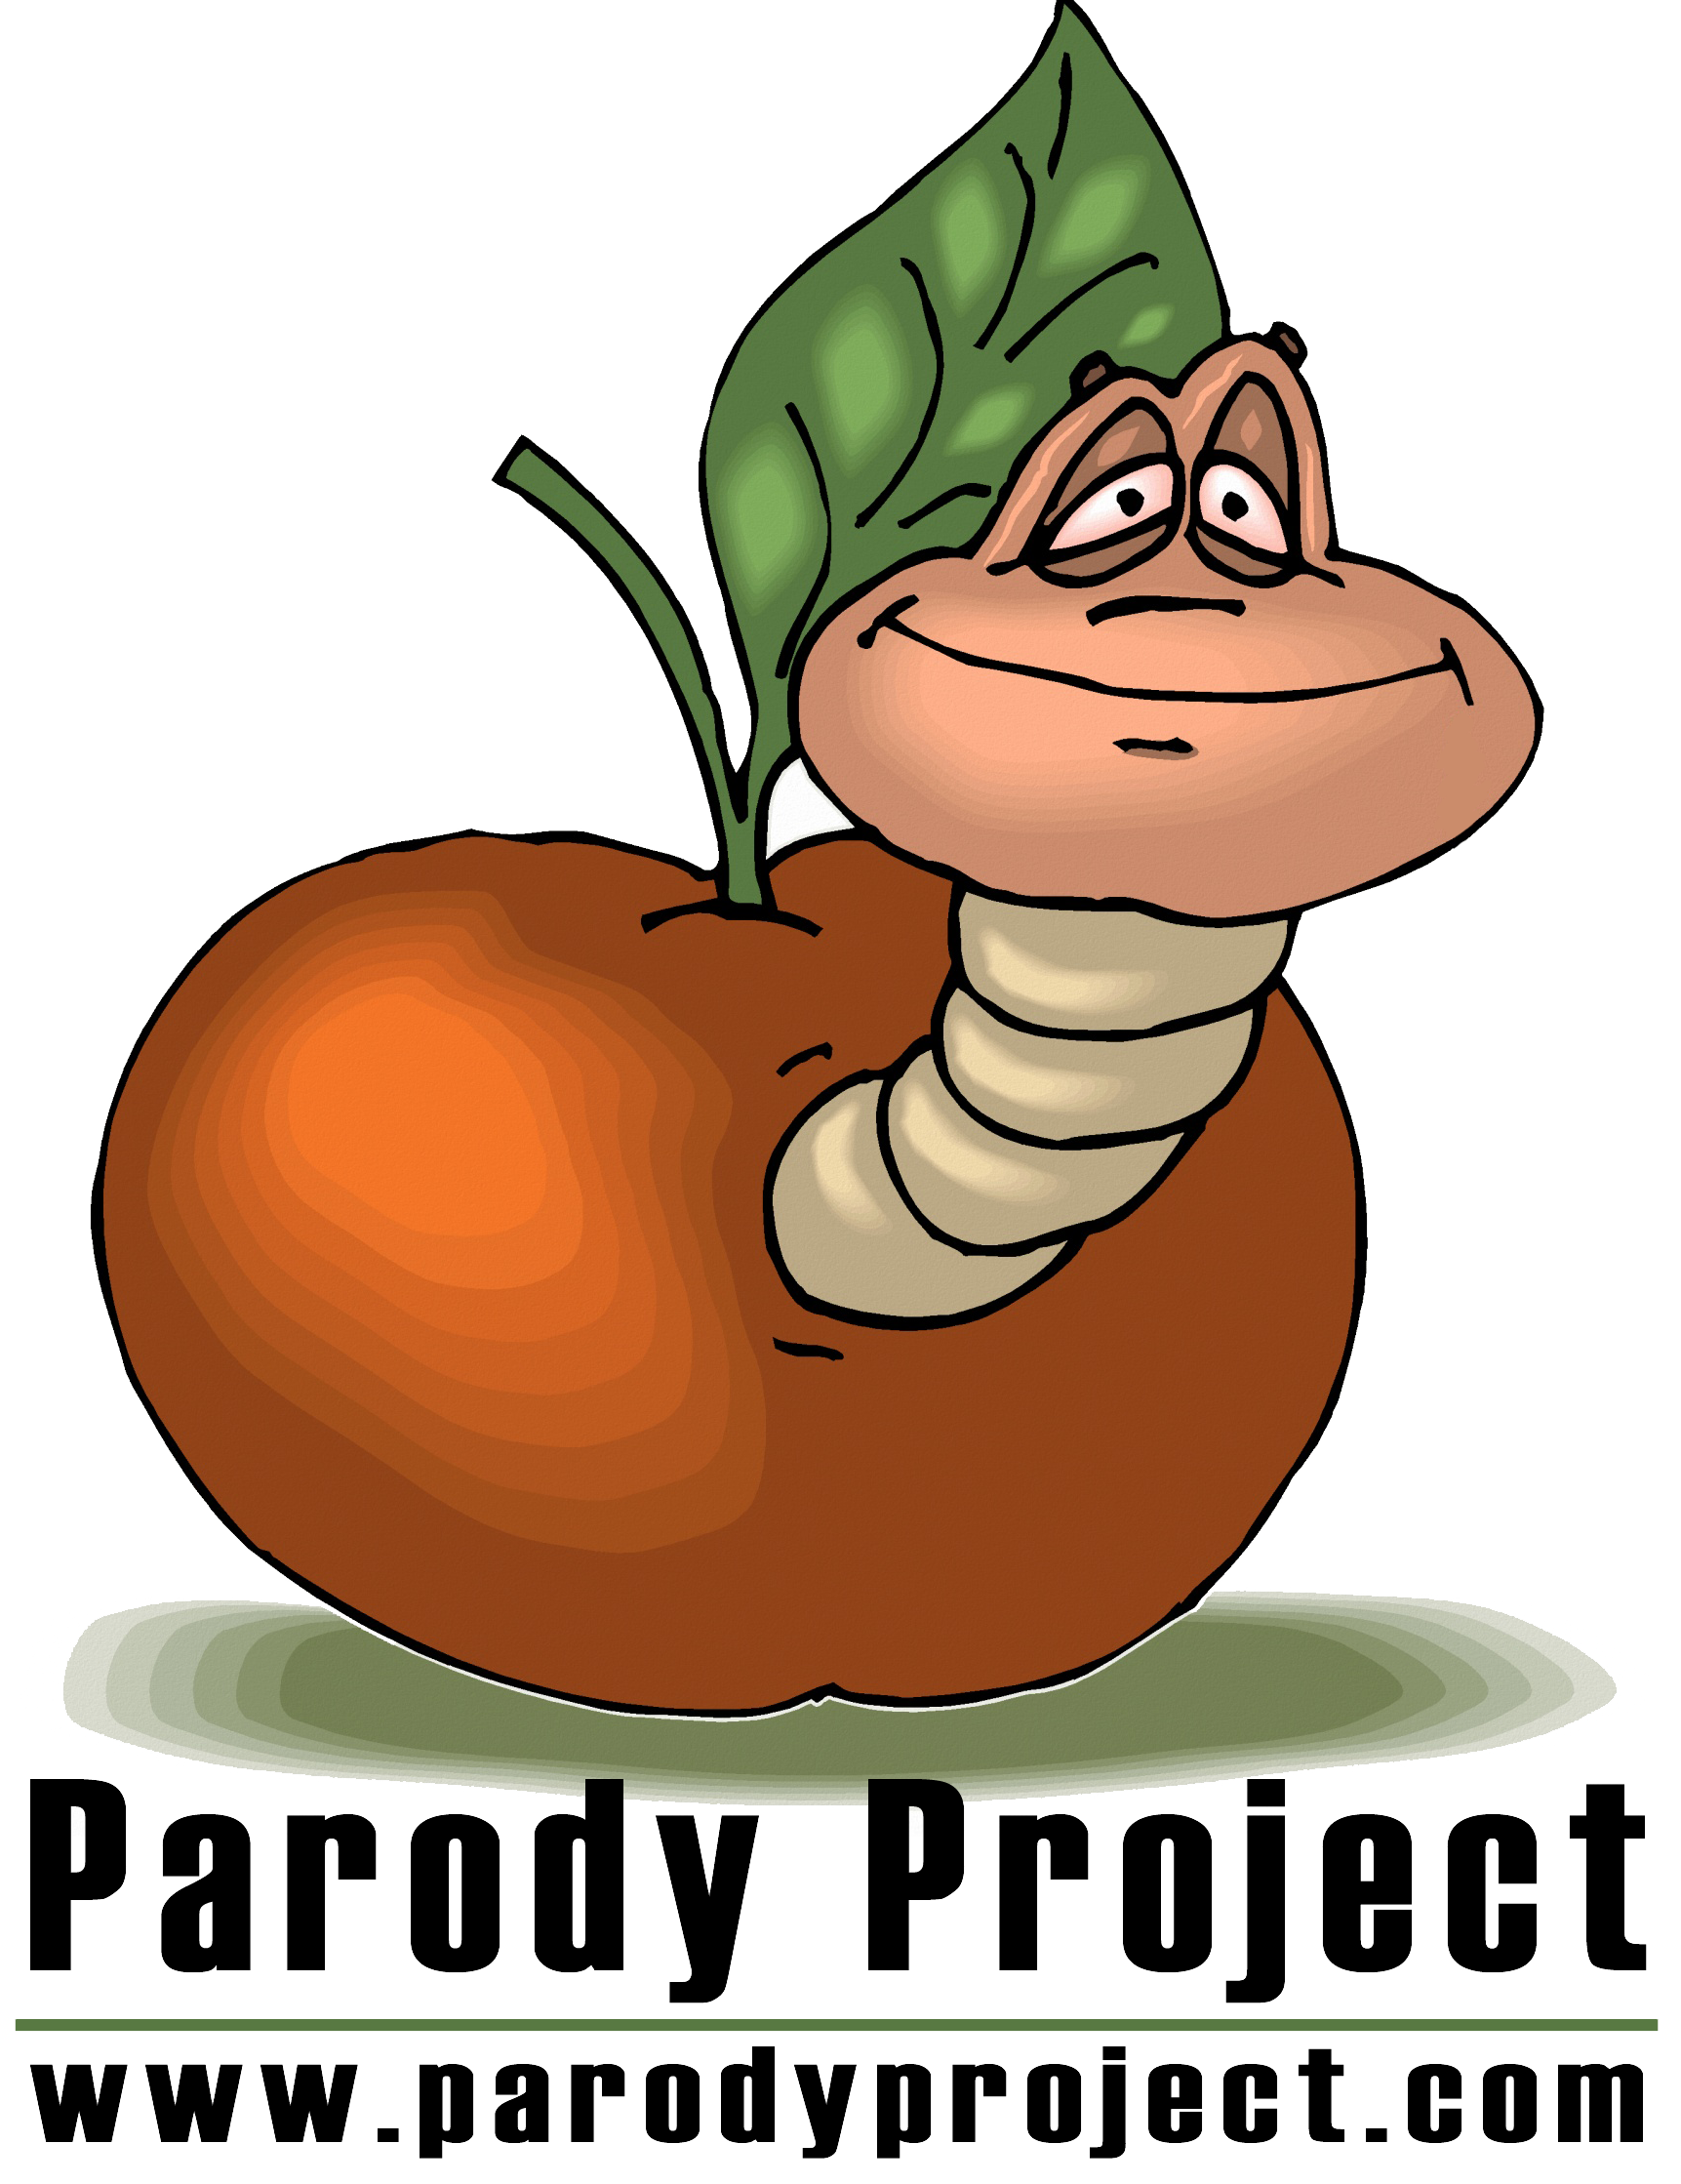 Parody Project